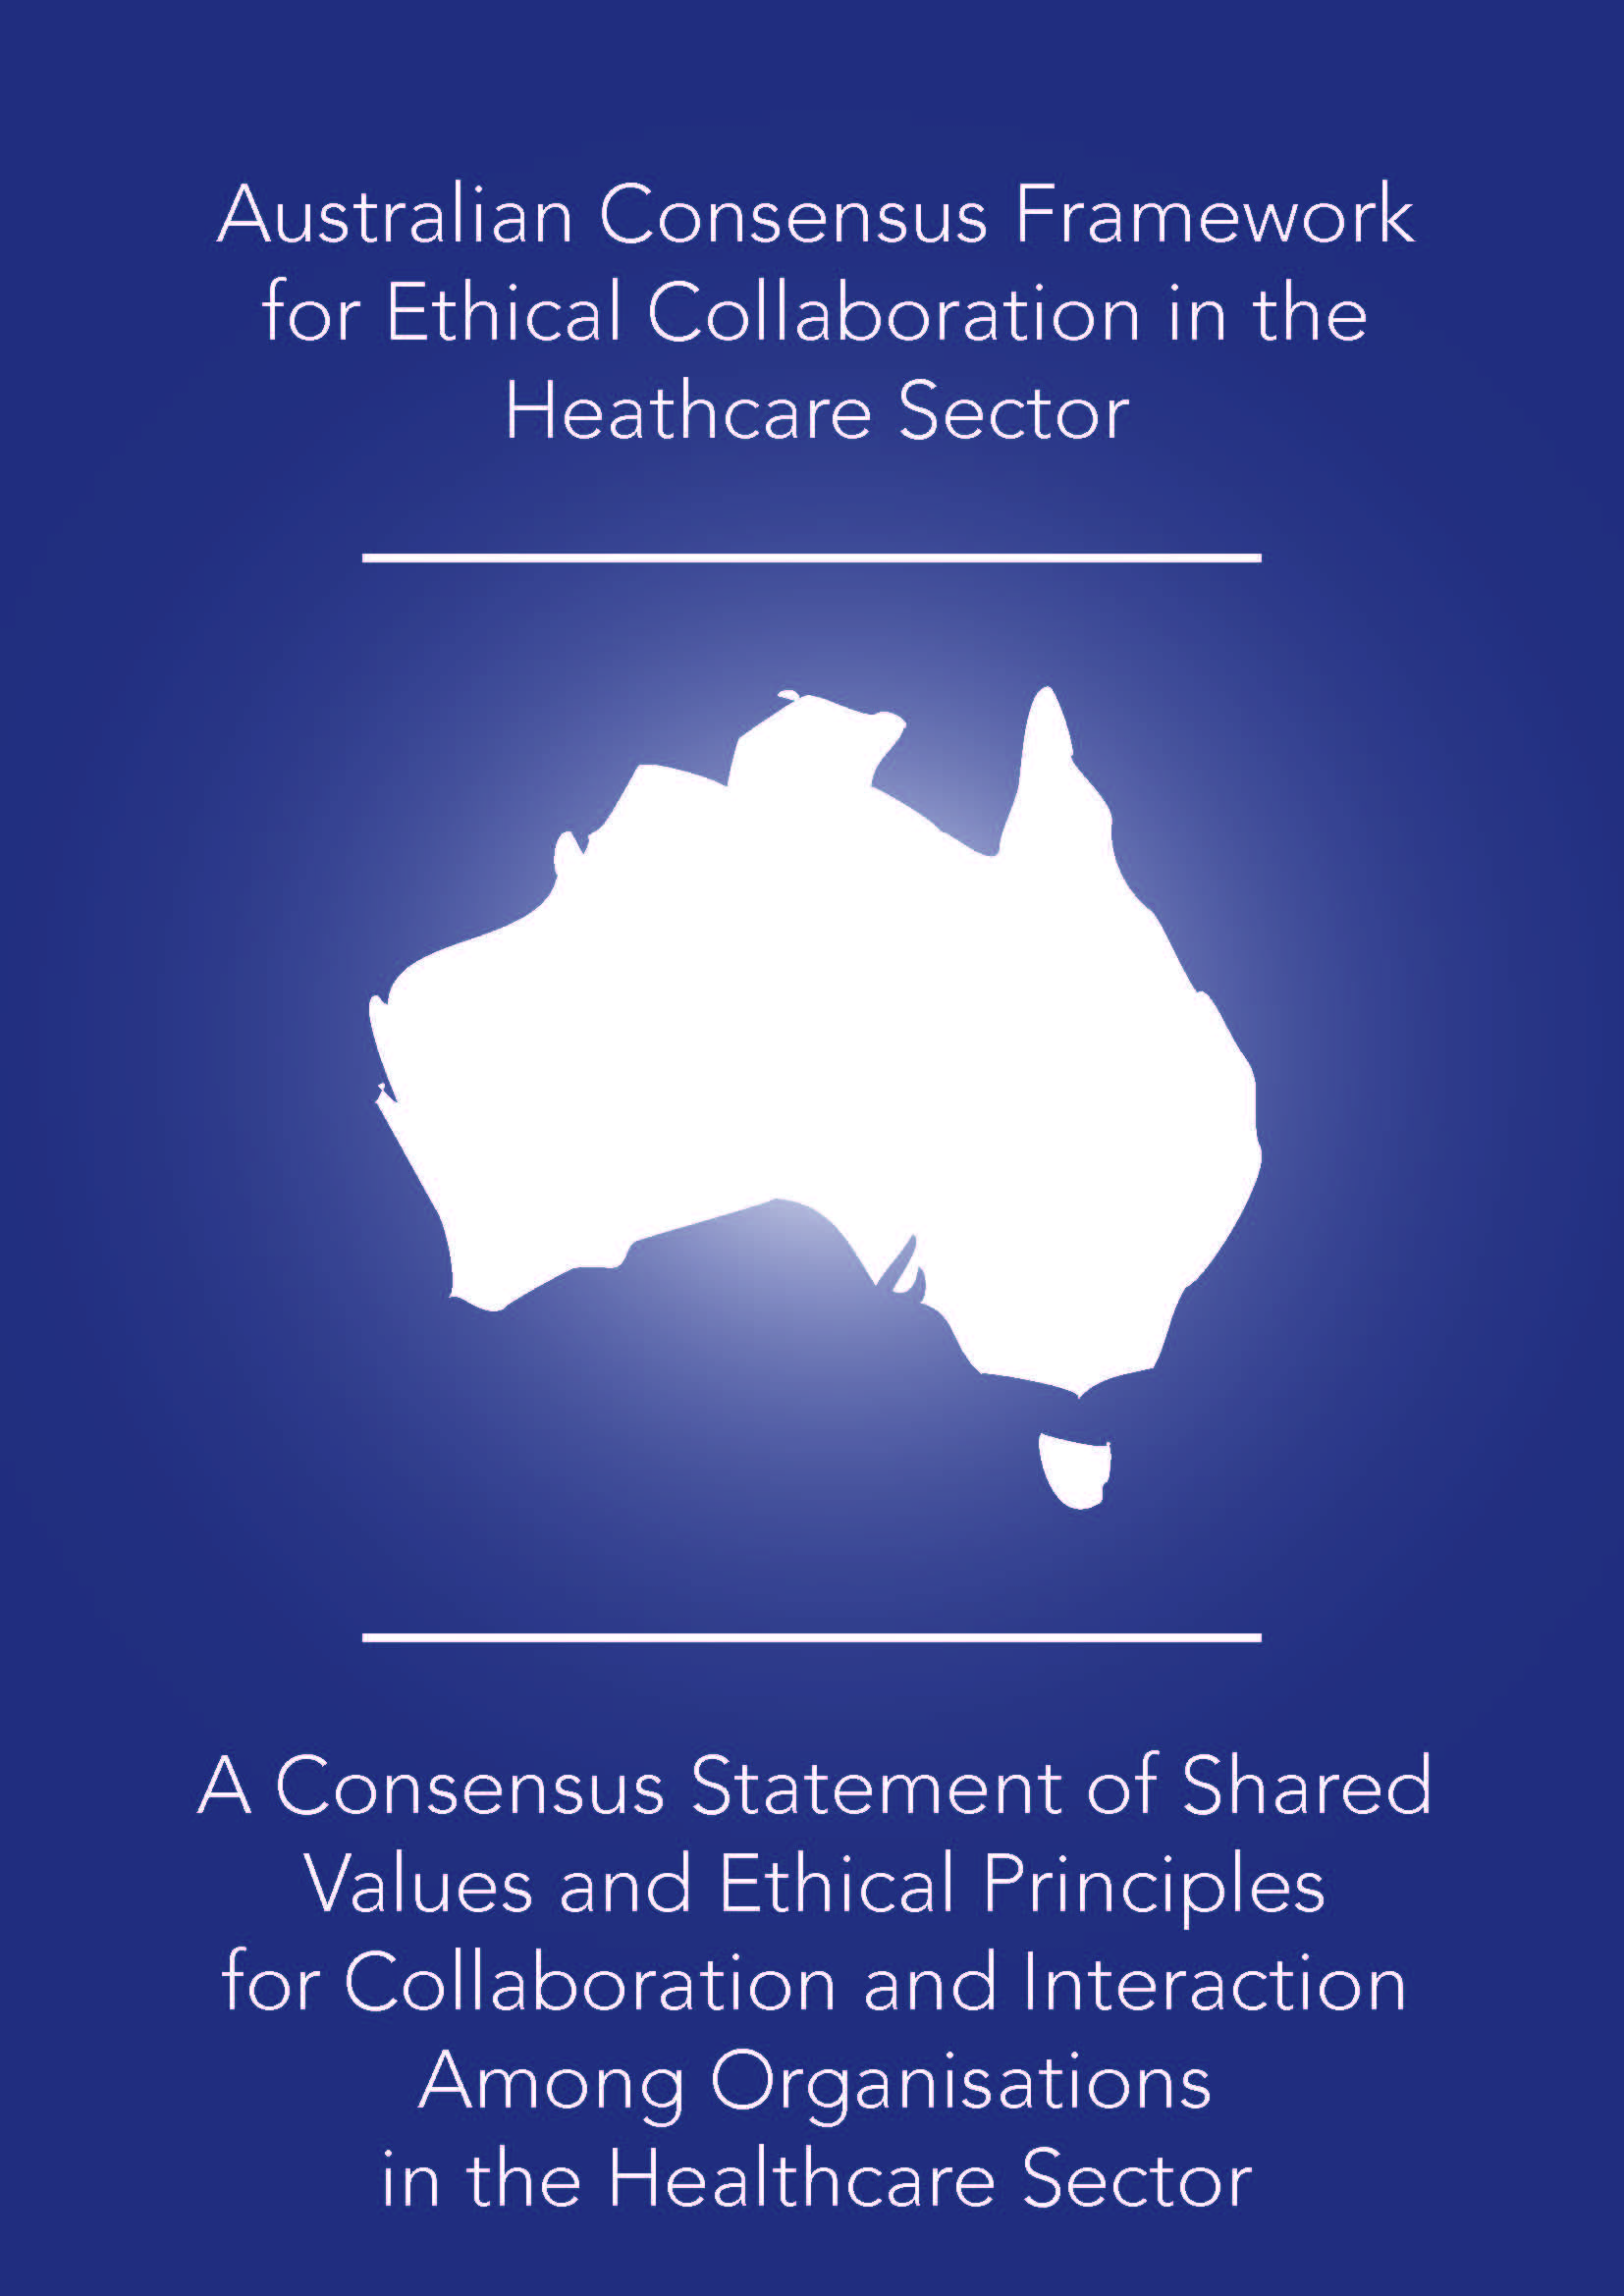 australian-consensus-framework-for-ethical-collaboration-in-the-healthcare-sectorpage01.jpg